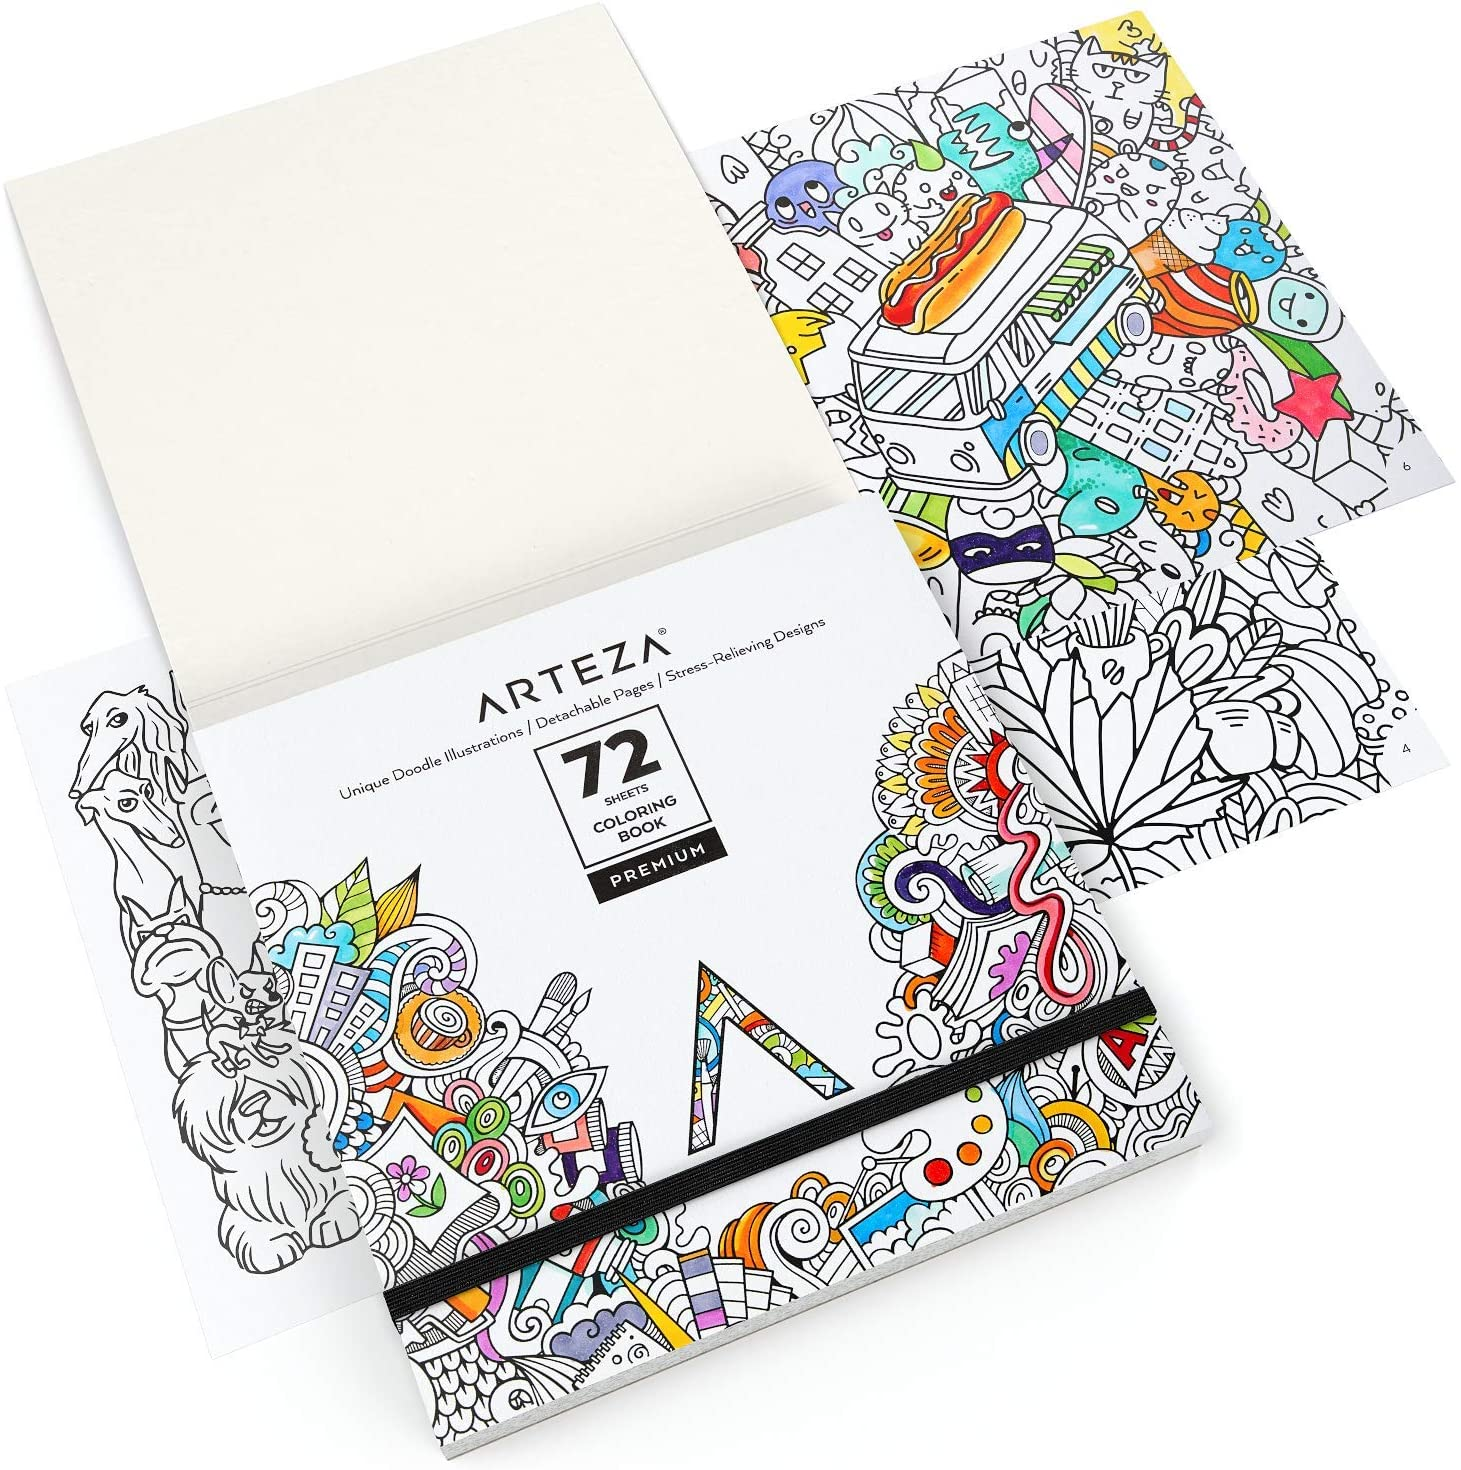 Arts Crafts 72 Relaxing Coloring Pages For Relieving Stress And Anxiety For Adults And Teens Encourages Meditation Arteza Animal Coloring Book For Adults Promotes Mindfulness Black Outlines Toys Games Engineering Webinars Com